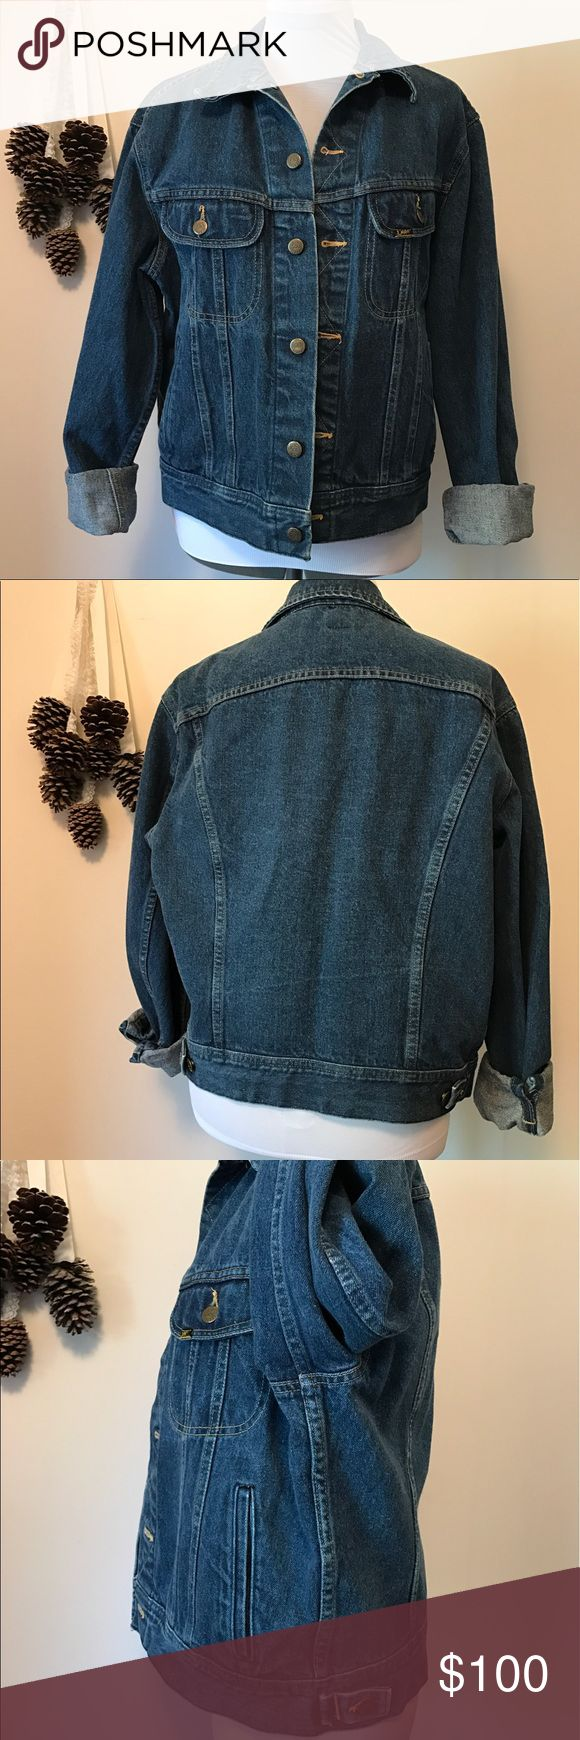 """Vintage Lee Jean Jacket Condition - awesome vintage shape, 9/10, normal wear but no flaws. 1st photo from Pinterest, similar but not the same. JJ51617M  Color - medium to dark wash  Measurements -  Underarm to underarm - 20.5"""" Shoulder to hem - 22"""" Underarm to end of sleeve - 20""""  Material - see photo tag Lee Jackets & Coats Jean Jackets"""